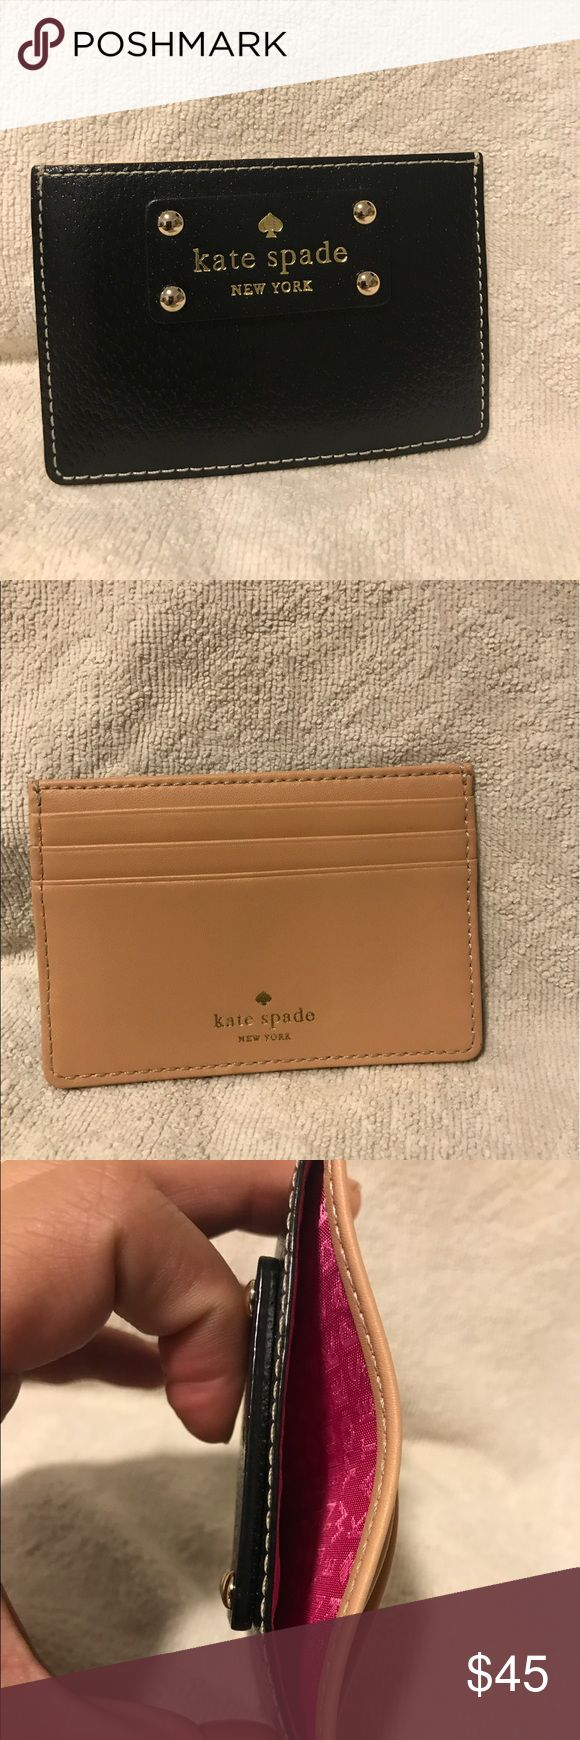 Kate Spade Wellesley Graham Credit Card Holder Wlt Kate Spade Graham Black Leather Credit Card Holder Kate Spade Graham Wellesley  Credit Card Holder / Case / Wallet  Guaranteed Authentic! New with Tags!  Information:  Brand: Kate Spade Name: Graham Wellesley Style#: WLRU1147 Color: Red Plum Measurements: Approx 2.9 x 4.3 inches Material: Leather 3 card slots, 1 ID slot Fabric Lining with Kate Spade logo kate spade Bags Wallets